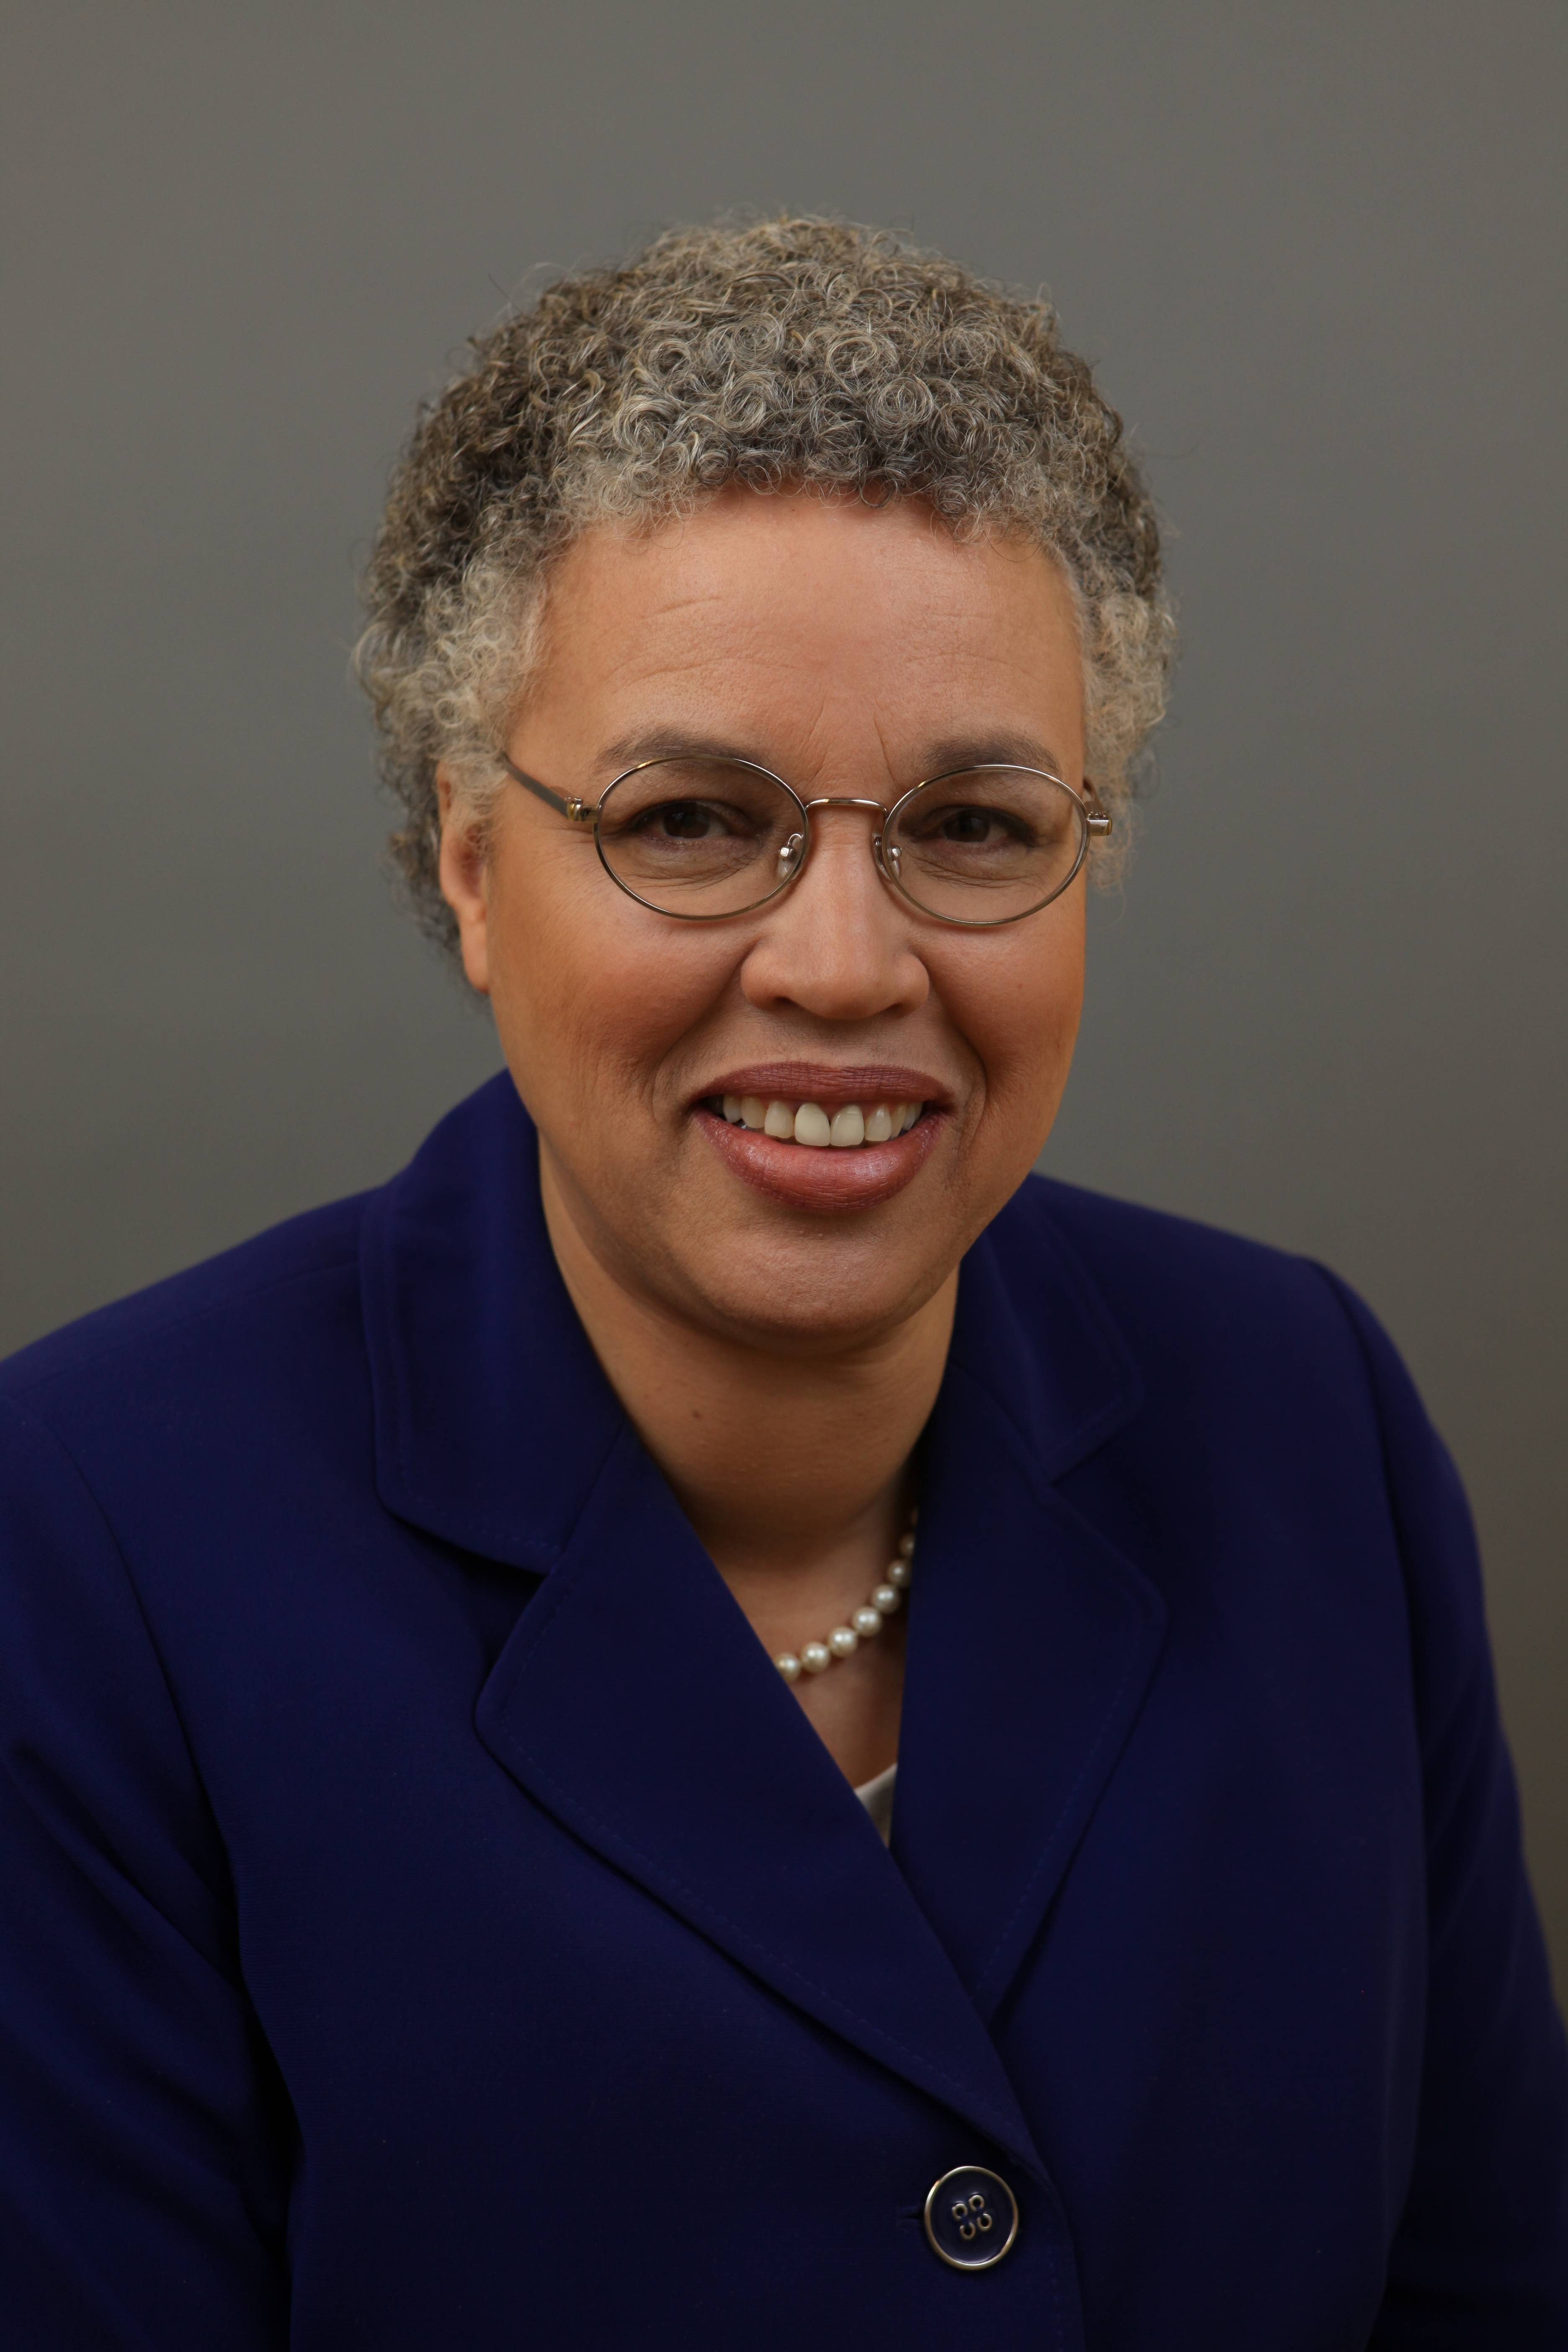 The spokesman for Cook County Board President Toni Preckwinkle says Preckwinkle is working on a number of possible scenarios to balance the county budget.